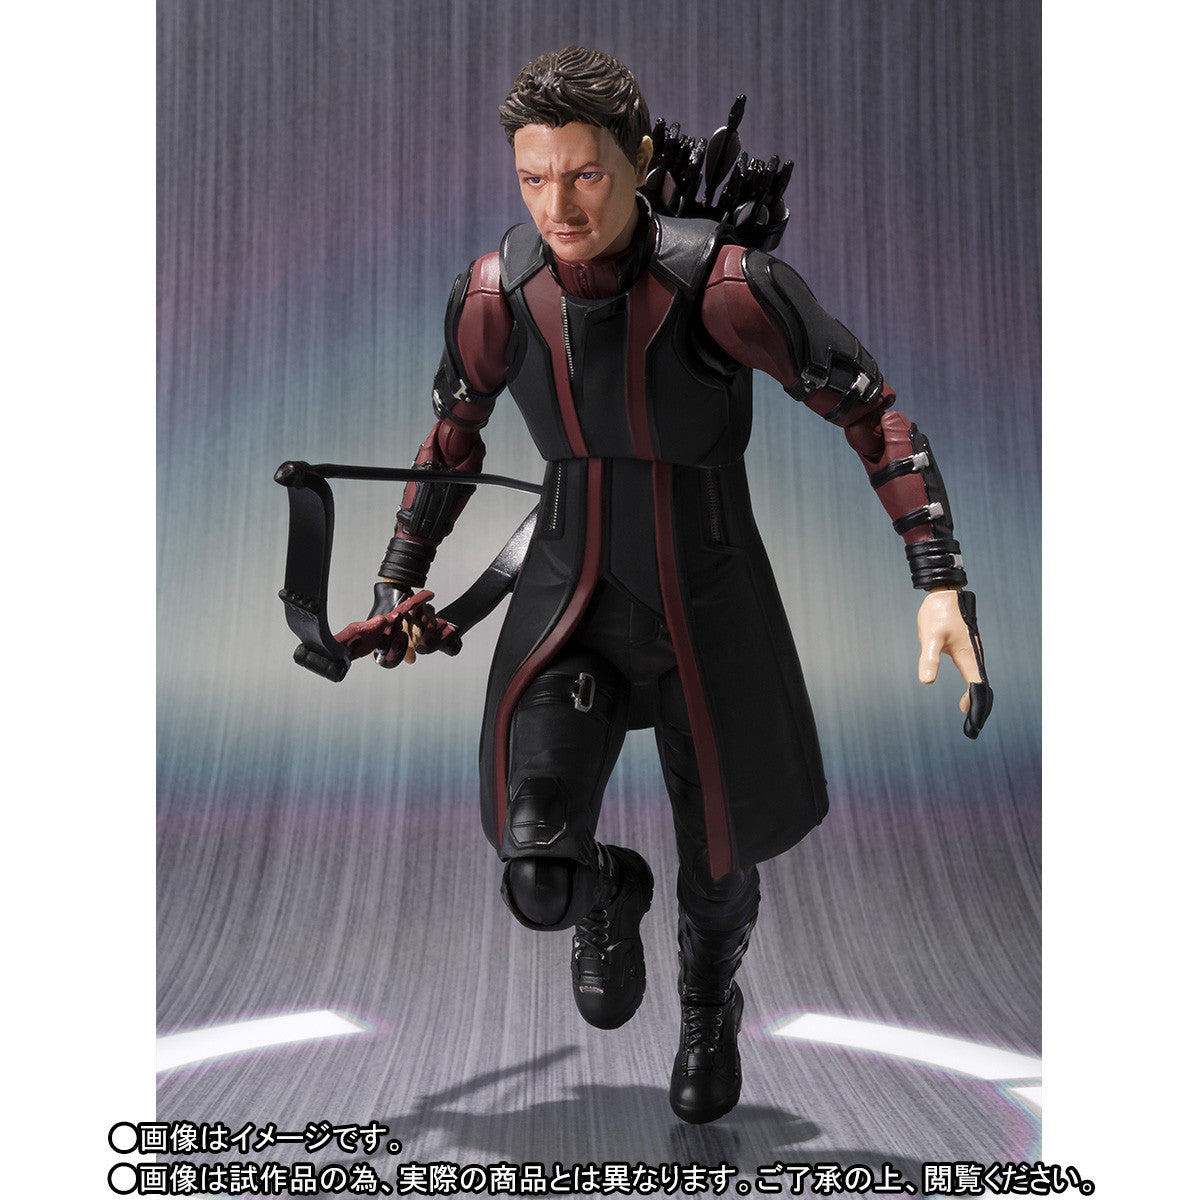 Select the Avengers Age Of Ultron Hawkeye Exclusive Action Figure